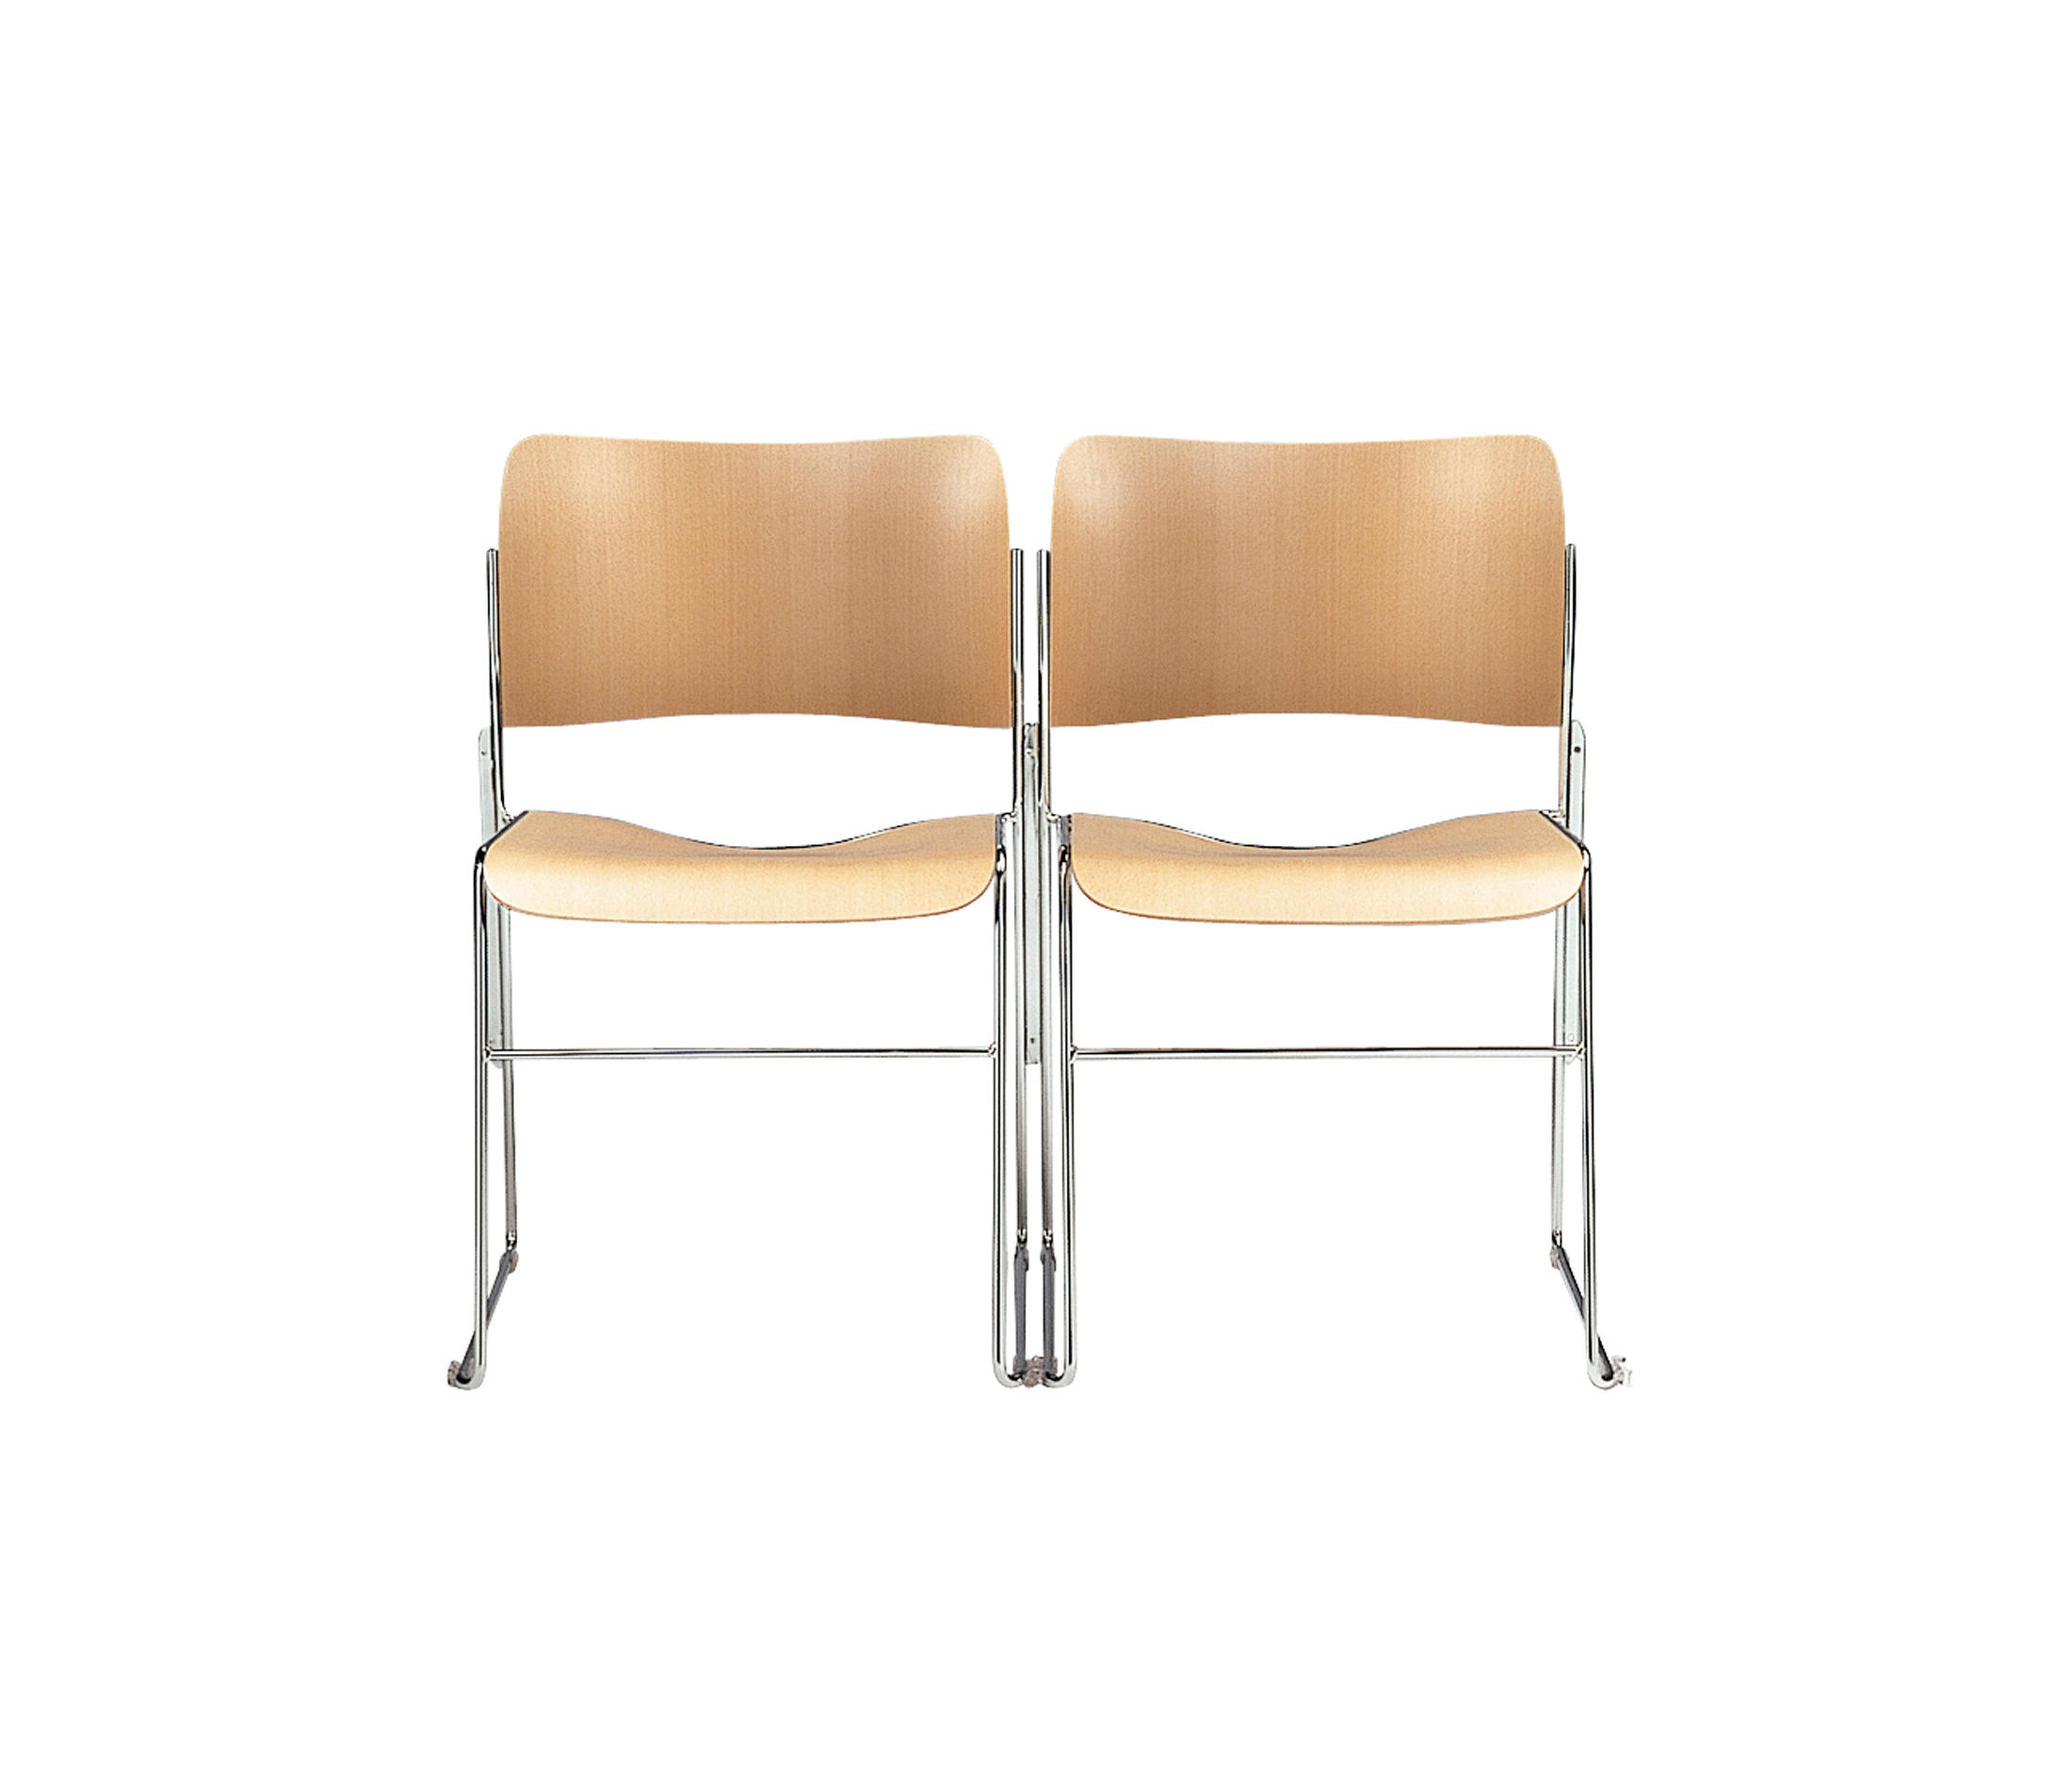 40 4 chair walmart bath with integrated linking visitors chairs